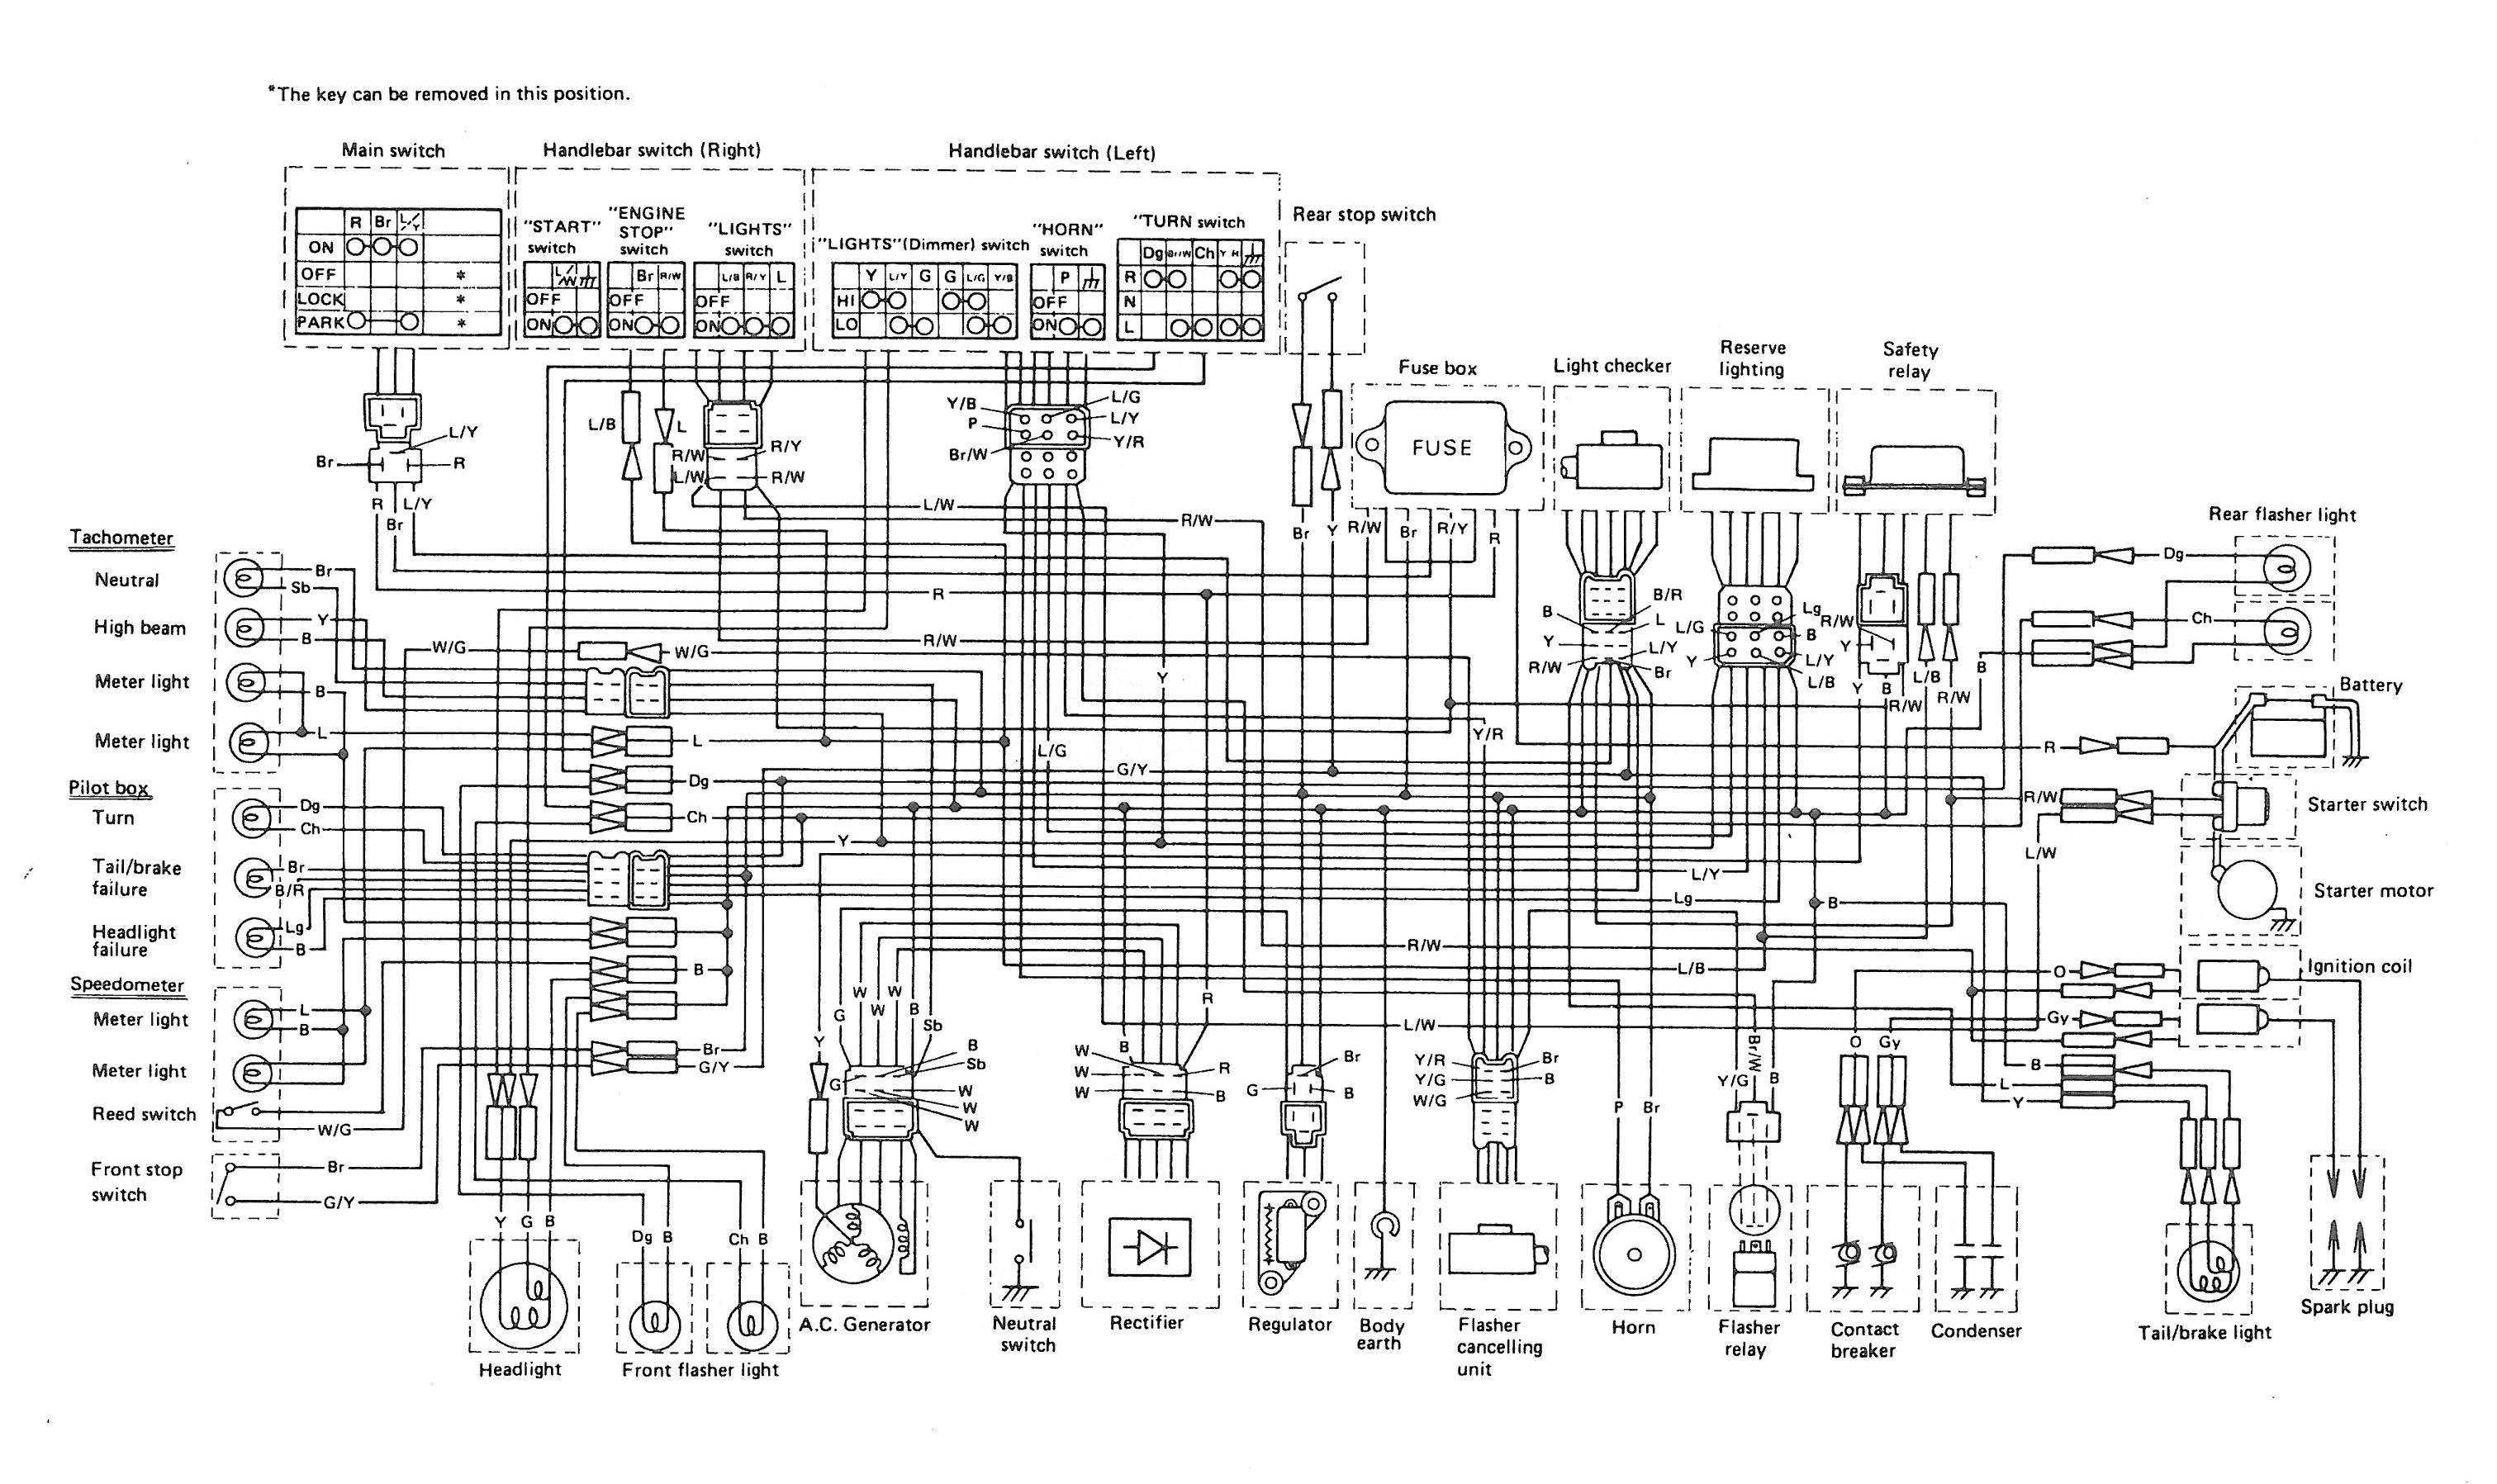 yamaha as3 wiring diagram best wiring library rh 34 princestaash org